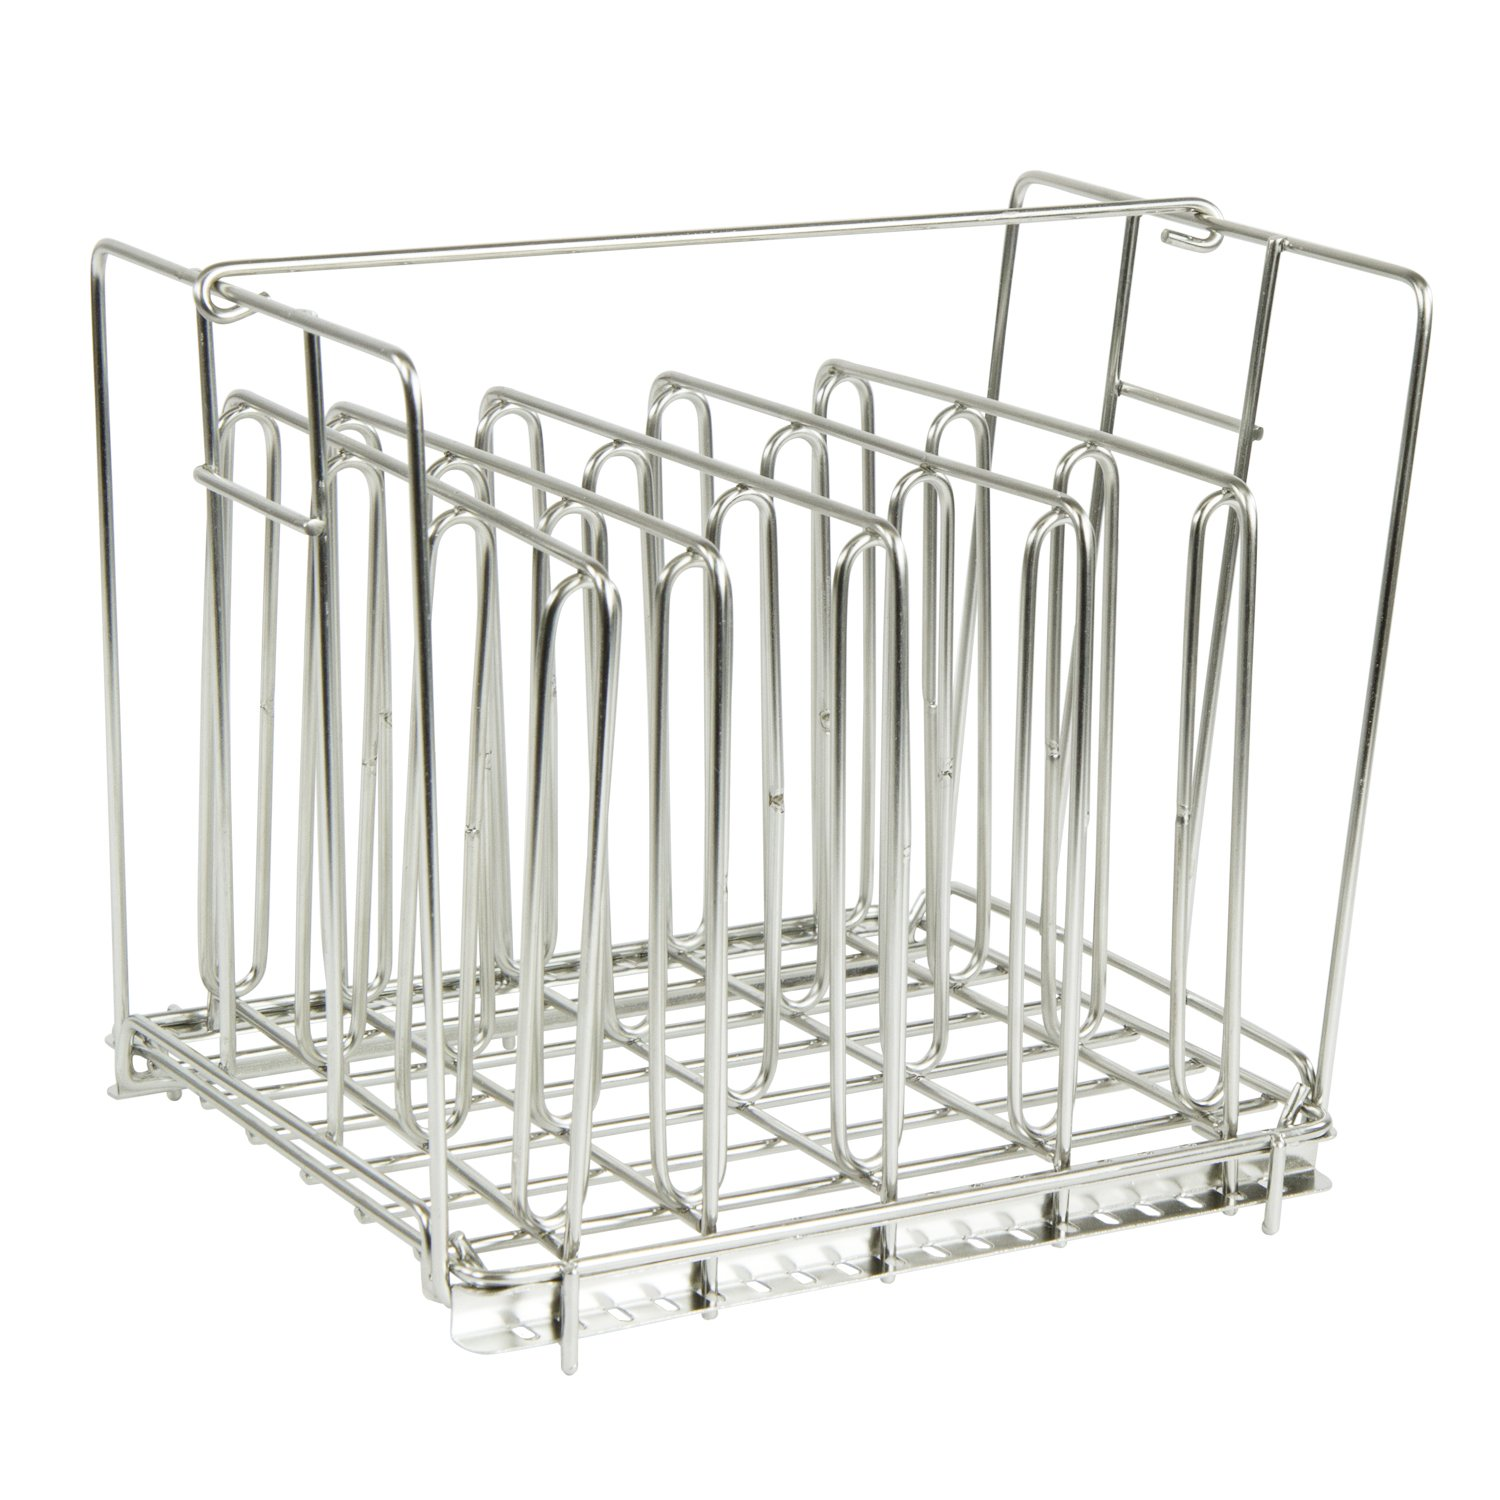 Houseables Sous Vide Rack, Food Holder Weight, 9 x 7 Inch, Stainless Steel, 5 Dividers, Fits 12 Quart Container, Even Heating Accessories, Holding Grid, No Float Top Bar, Adjustable, Collapsible